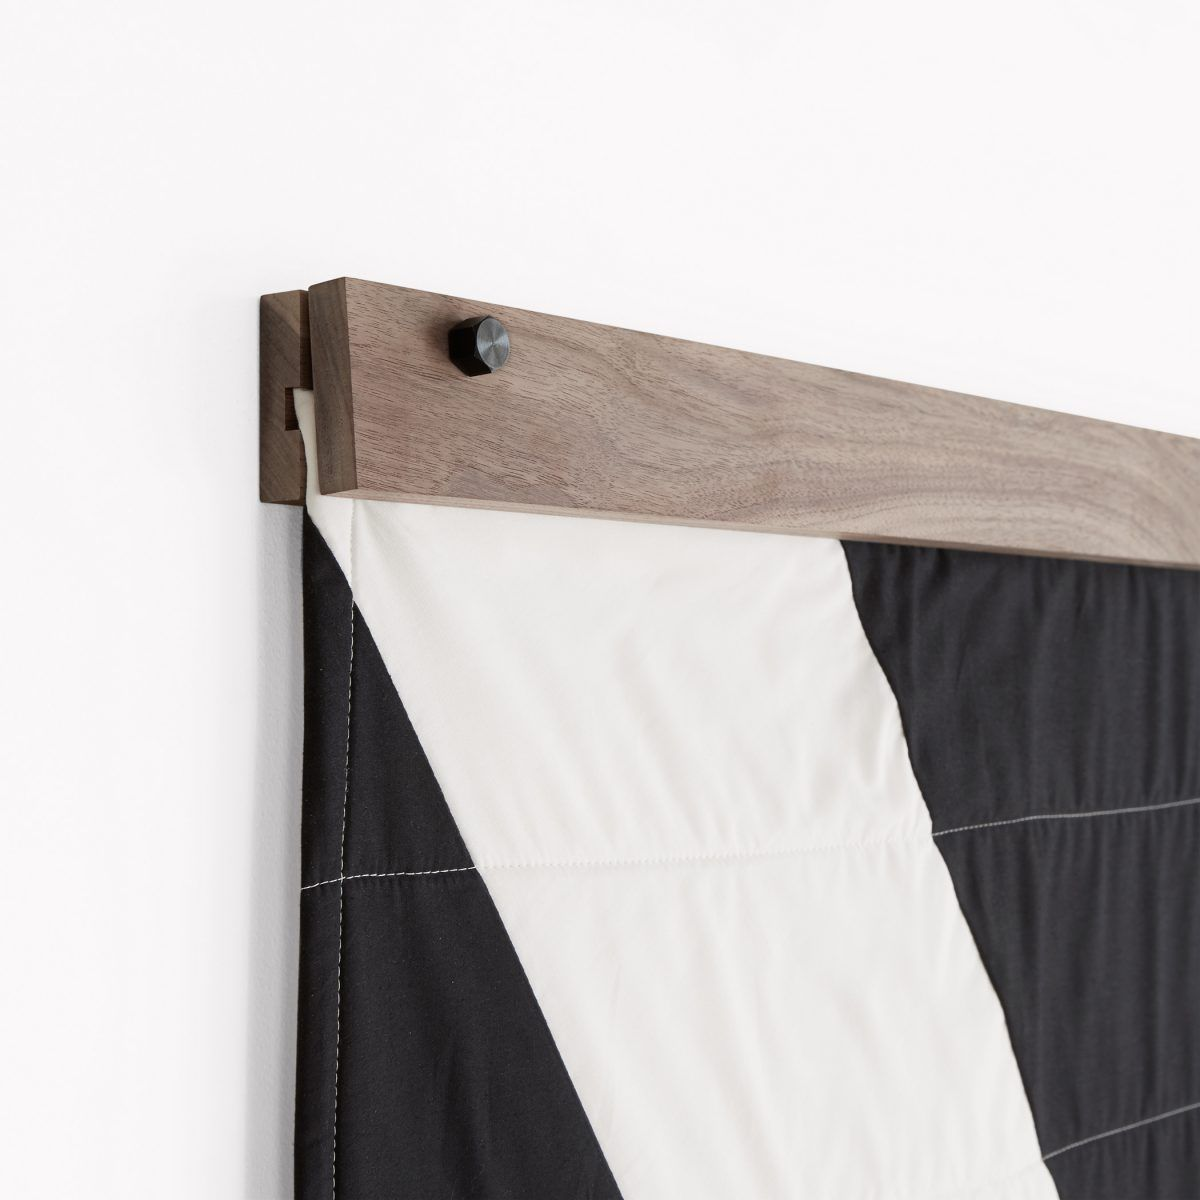 Wooden Little Quilt Hanger Handcrafted By Local Artisans In Minneapolis Mn Louise Gray Quilt Hangers Quilt Rack Quilt Wall Hangers